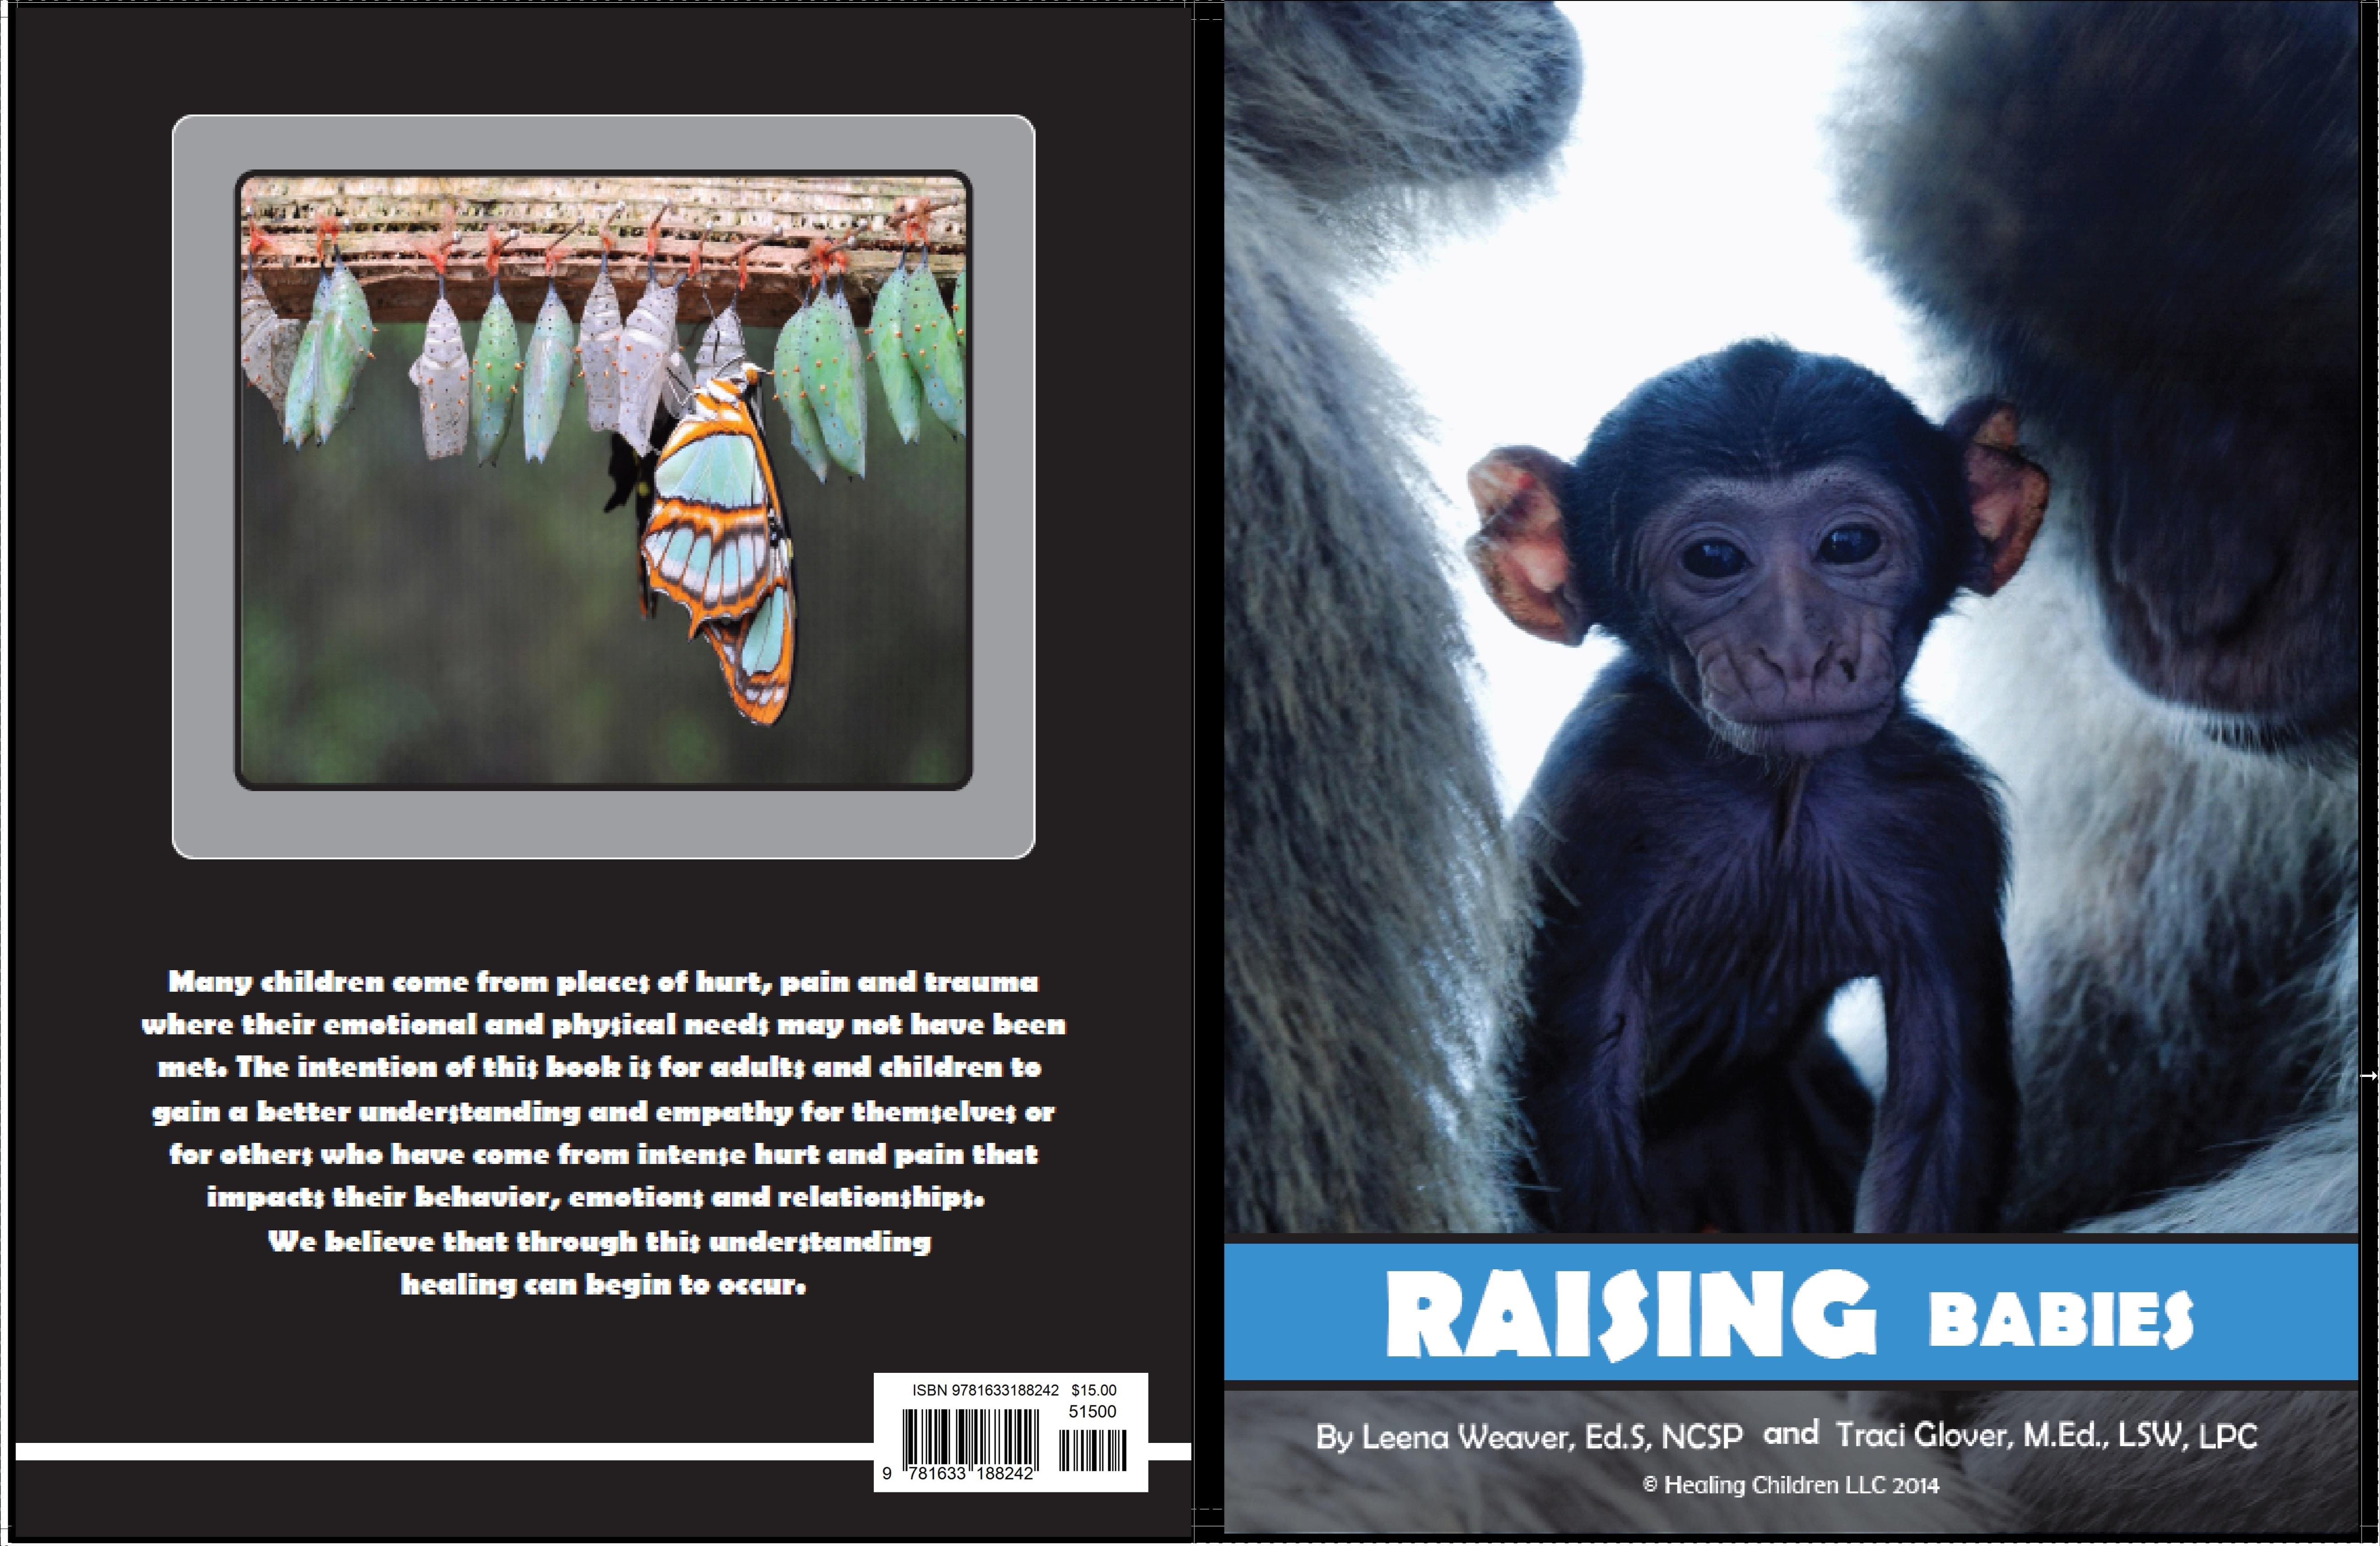 Raising Babies cover image